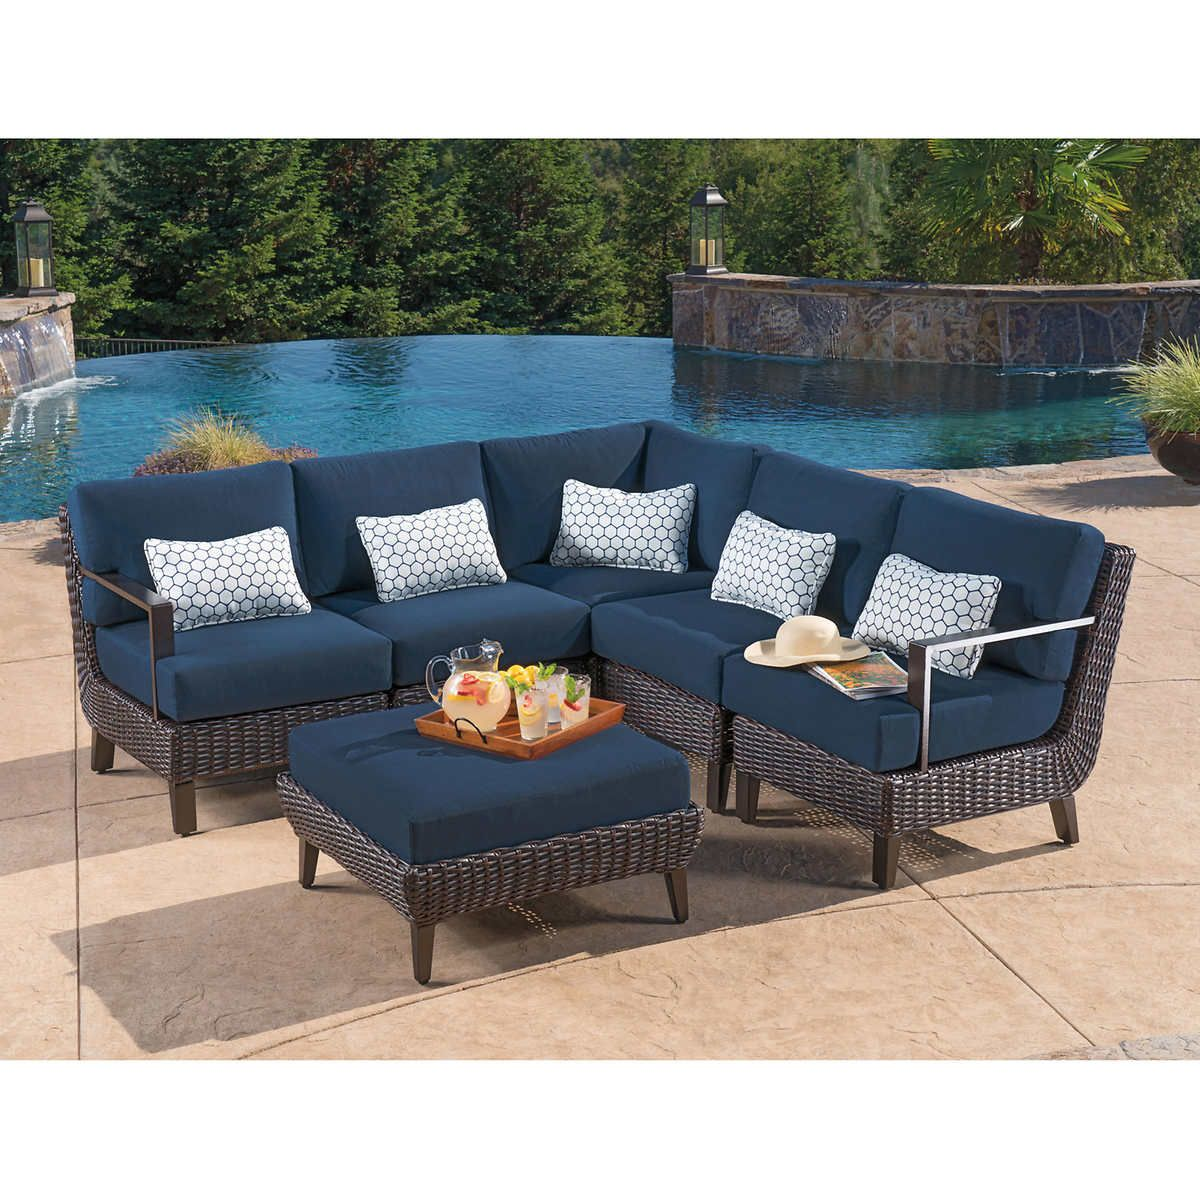 Costco 6 Piece Sectional 949 99 In Store With Images Deep Seating Patio Seating Sets Outdoor Furniture Sets